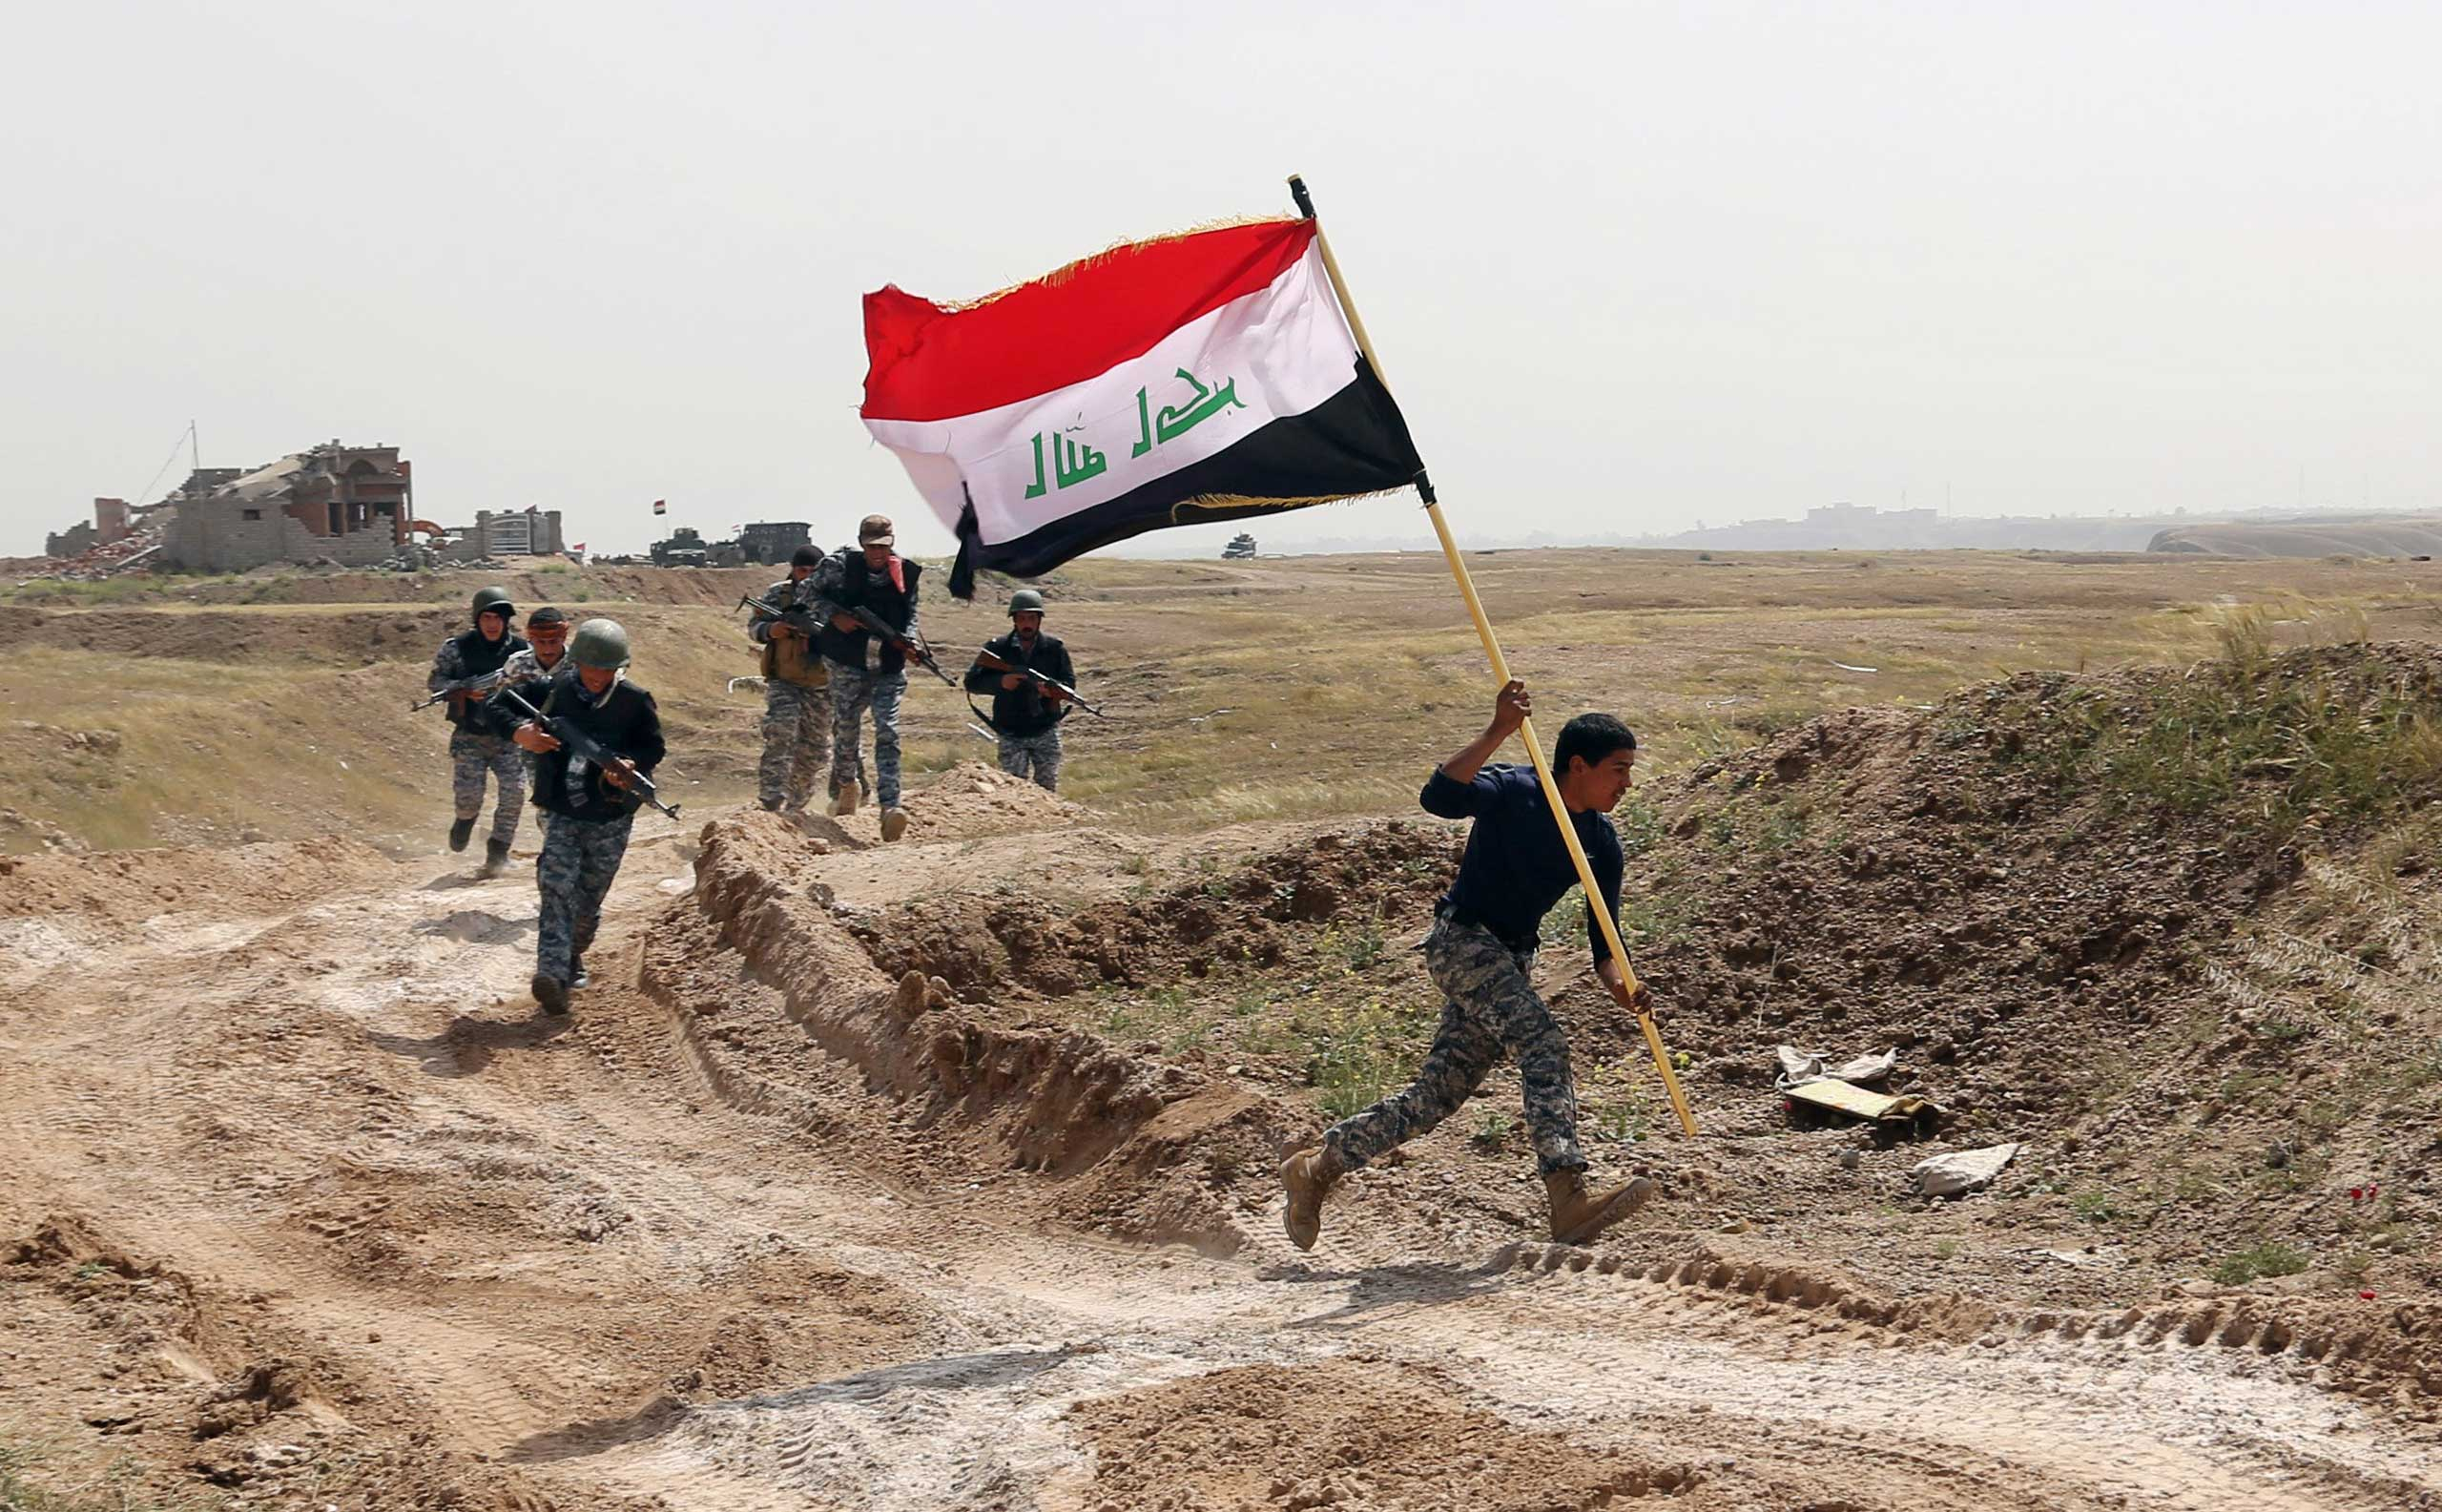 A member of the Iraqi security forces runs to plant the national flag as they surround Tikrit during clashes to regain the city from Islamic State militants, 80 miles north of Baghdad, Iraq, March 30, 2015.